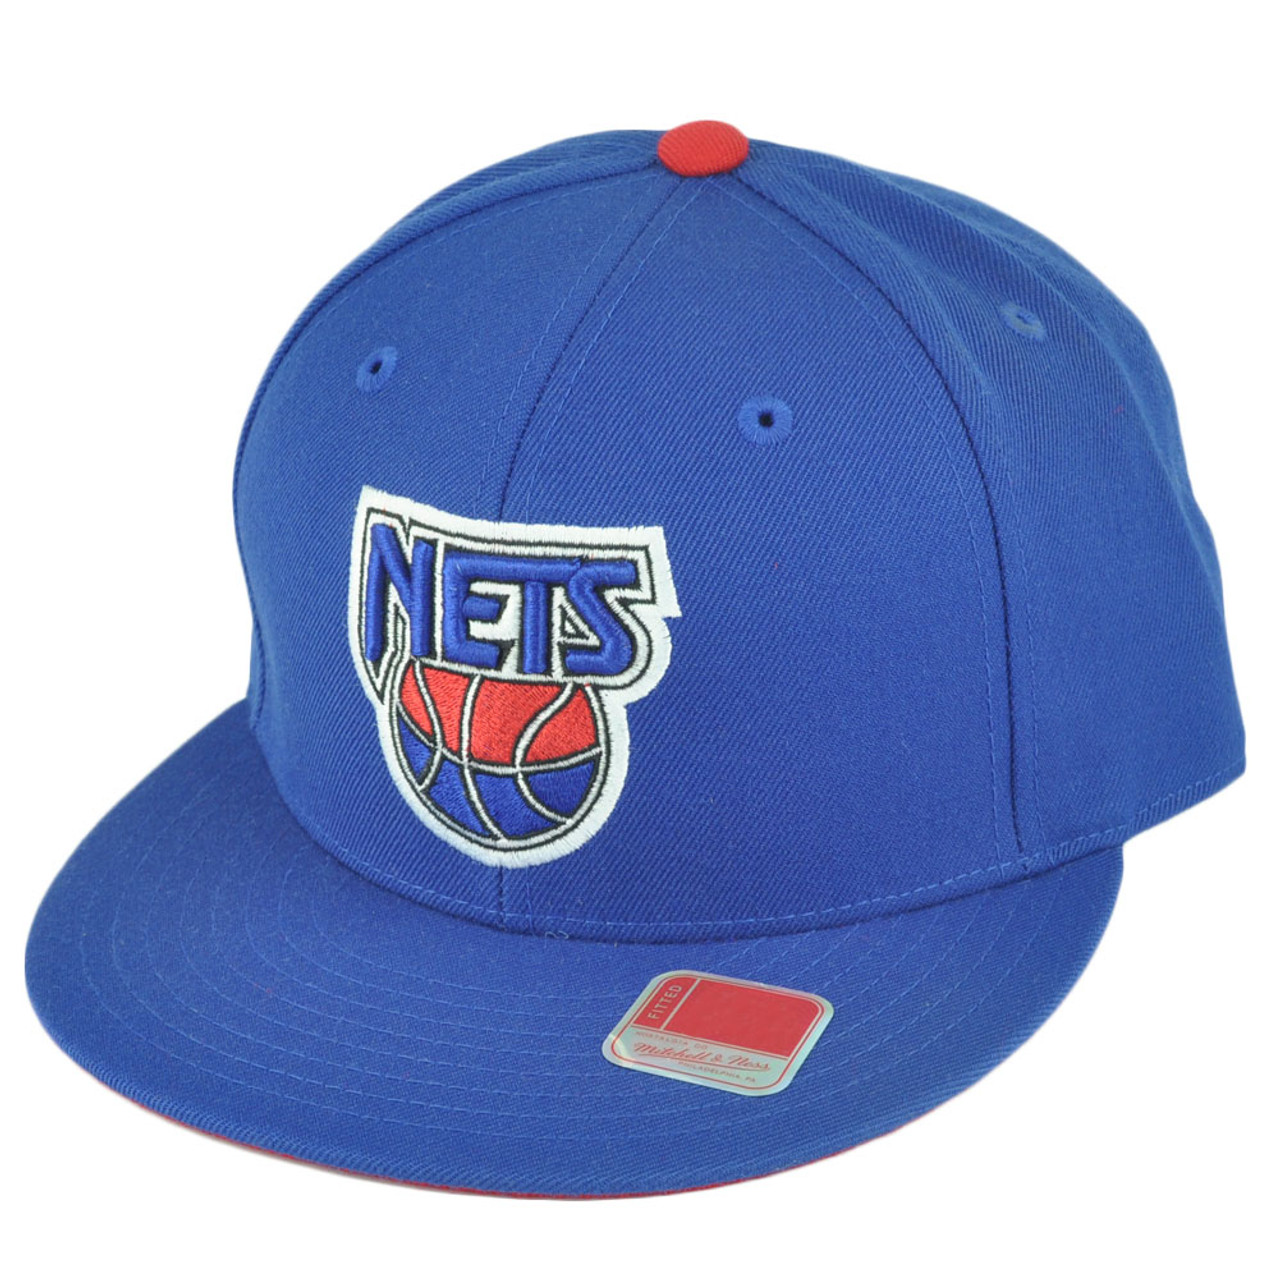 best service e8ed5 f8f73 NBA Mitchell Ness TK40 New Jersey Nets Fitted Alternate Blue Hat Cap